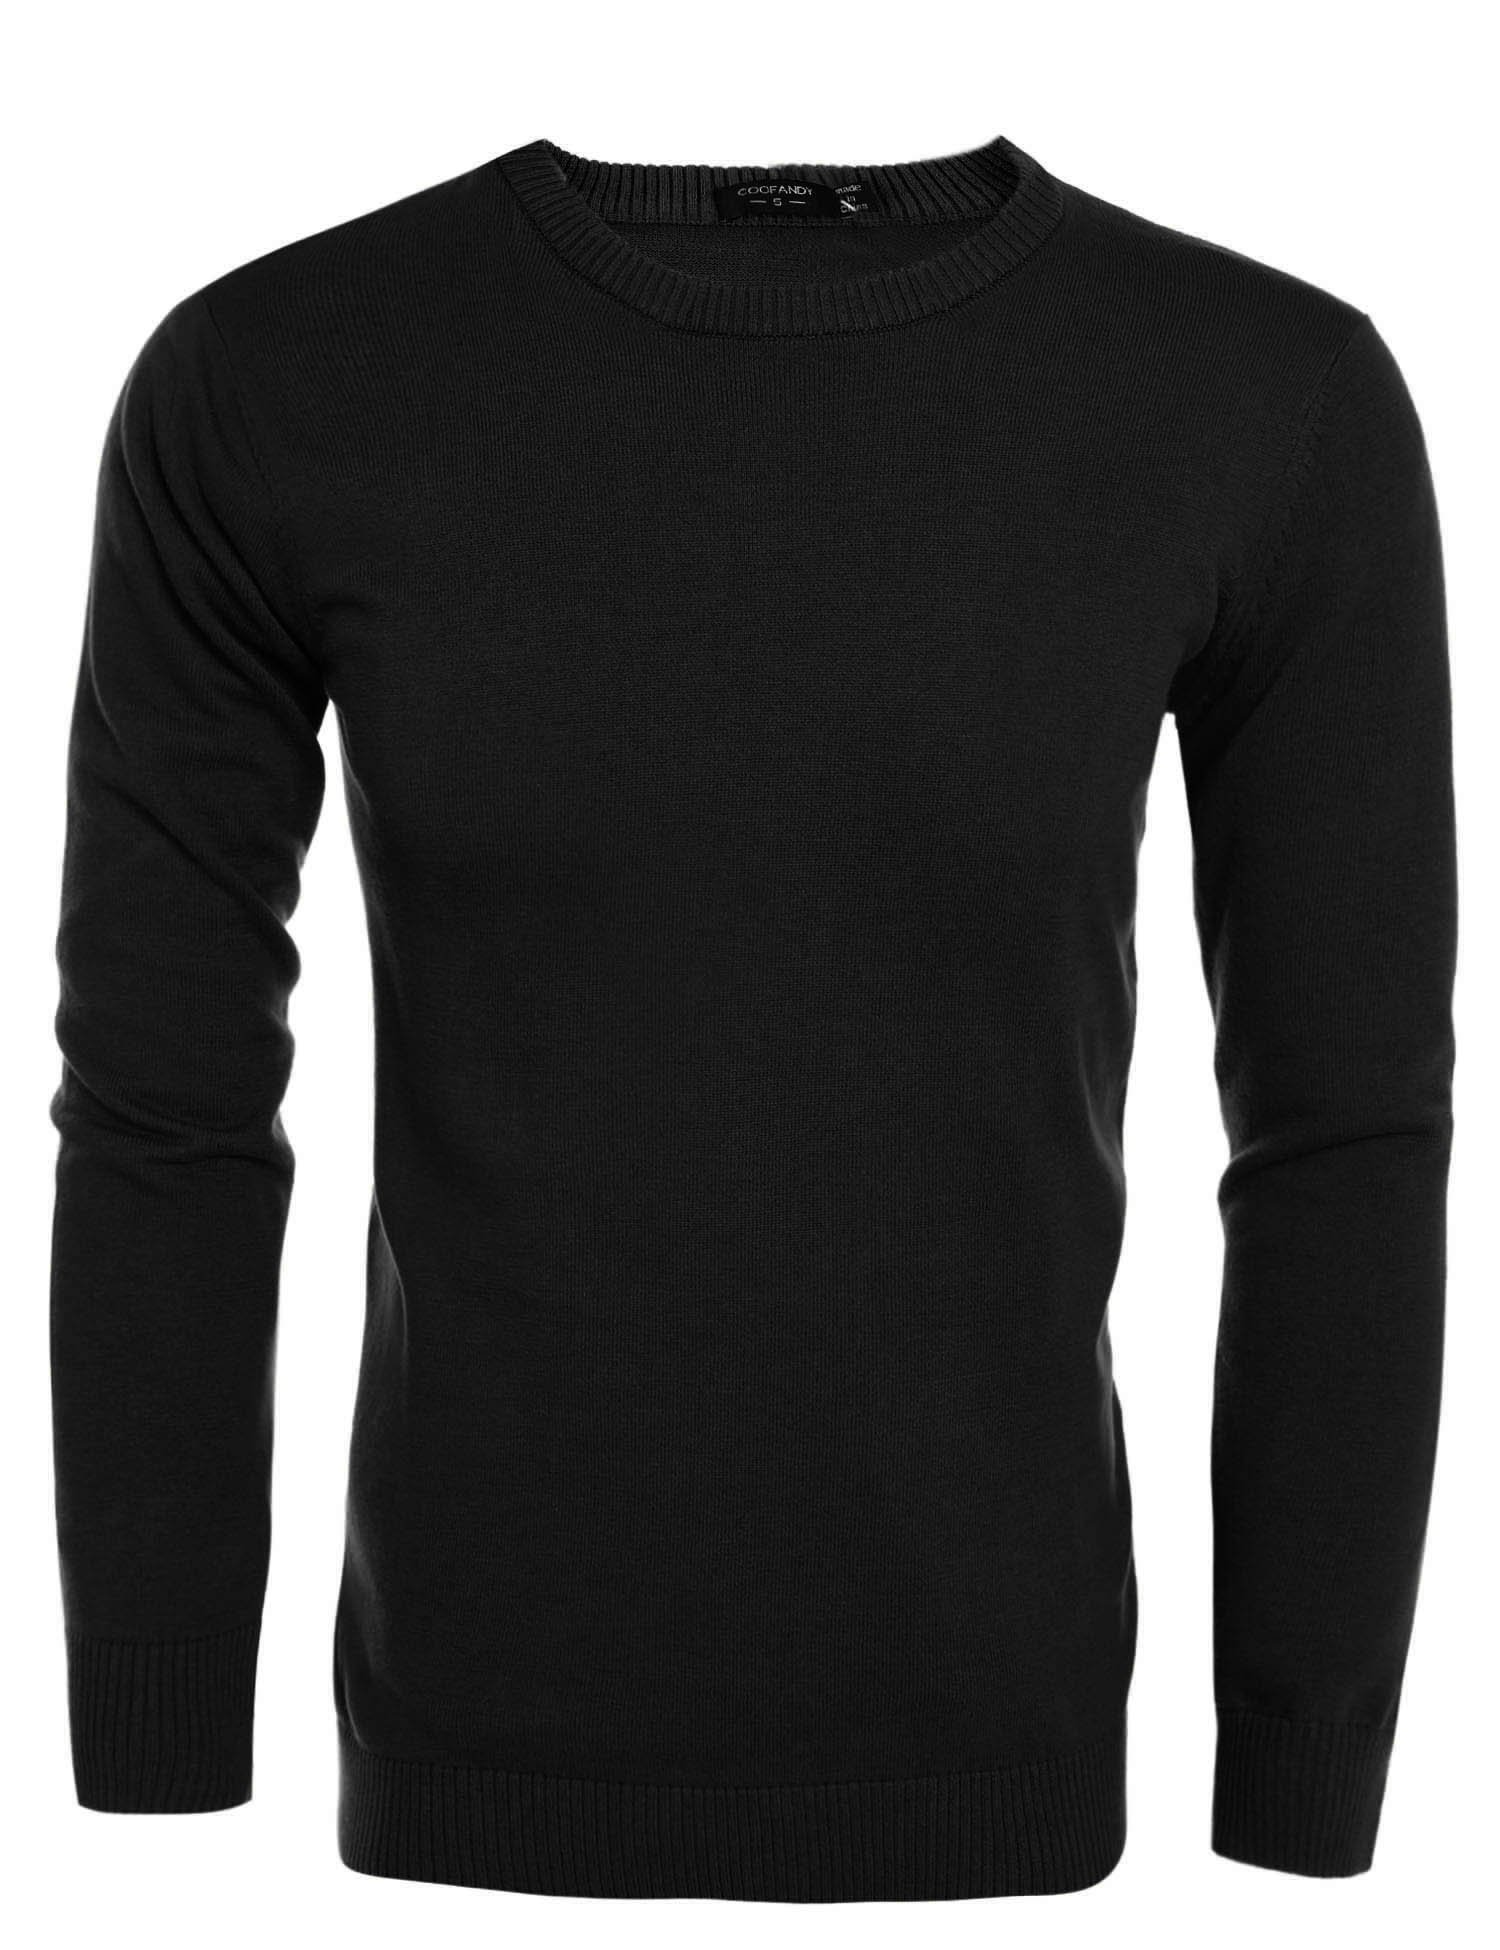 COOFANDY Men's Long Sleeve Slim Fit Crewneck Pullover Sweater (M, Black) by COOFANDY